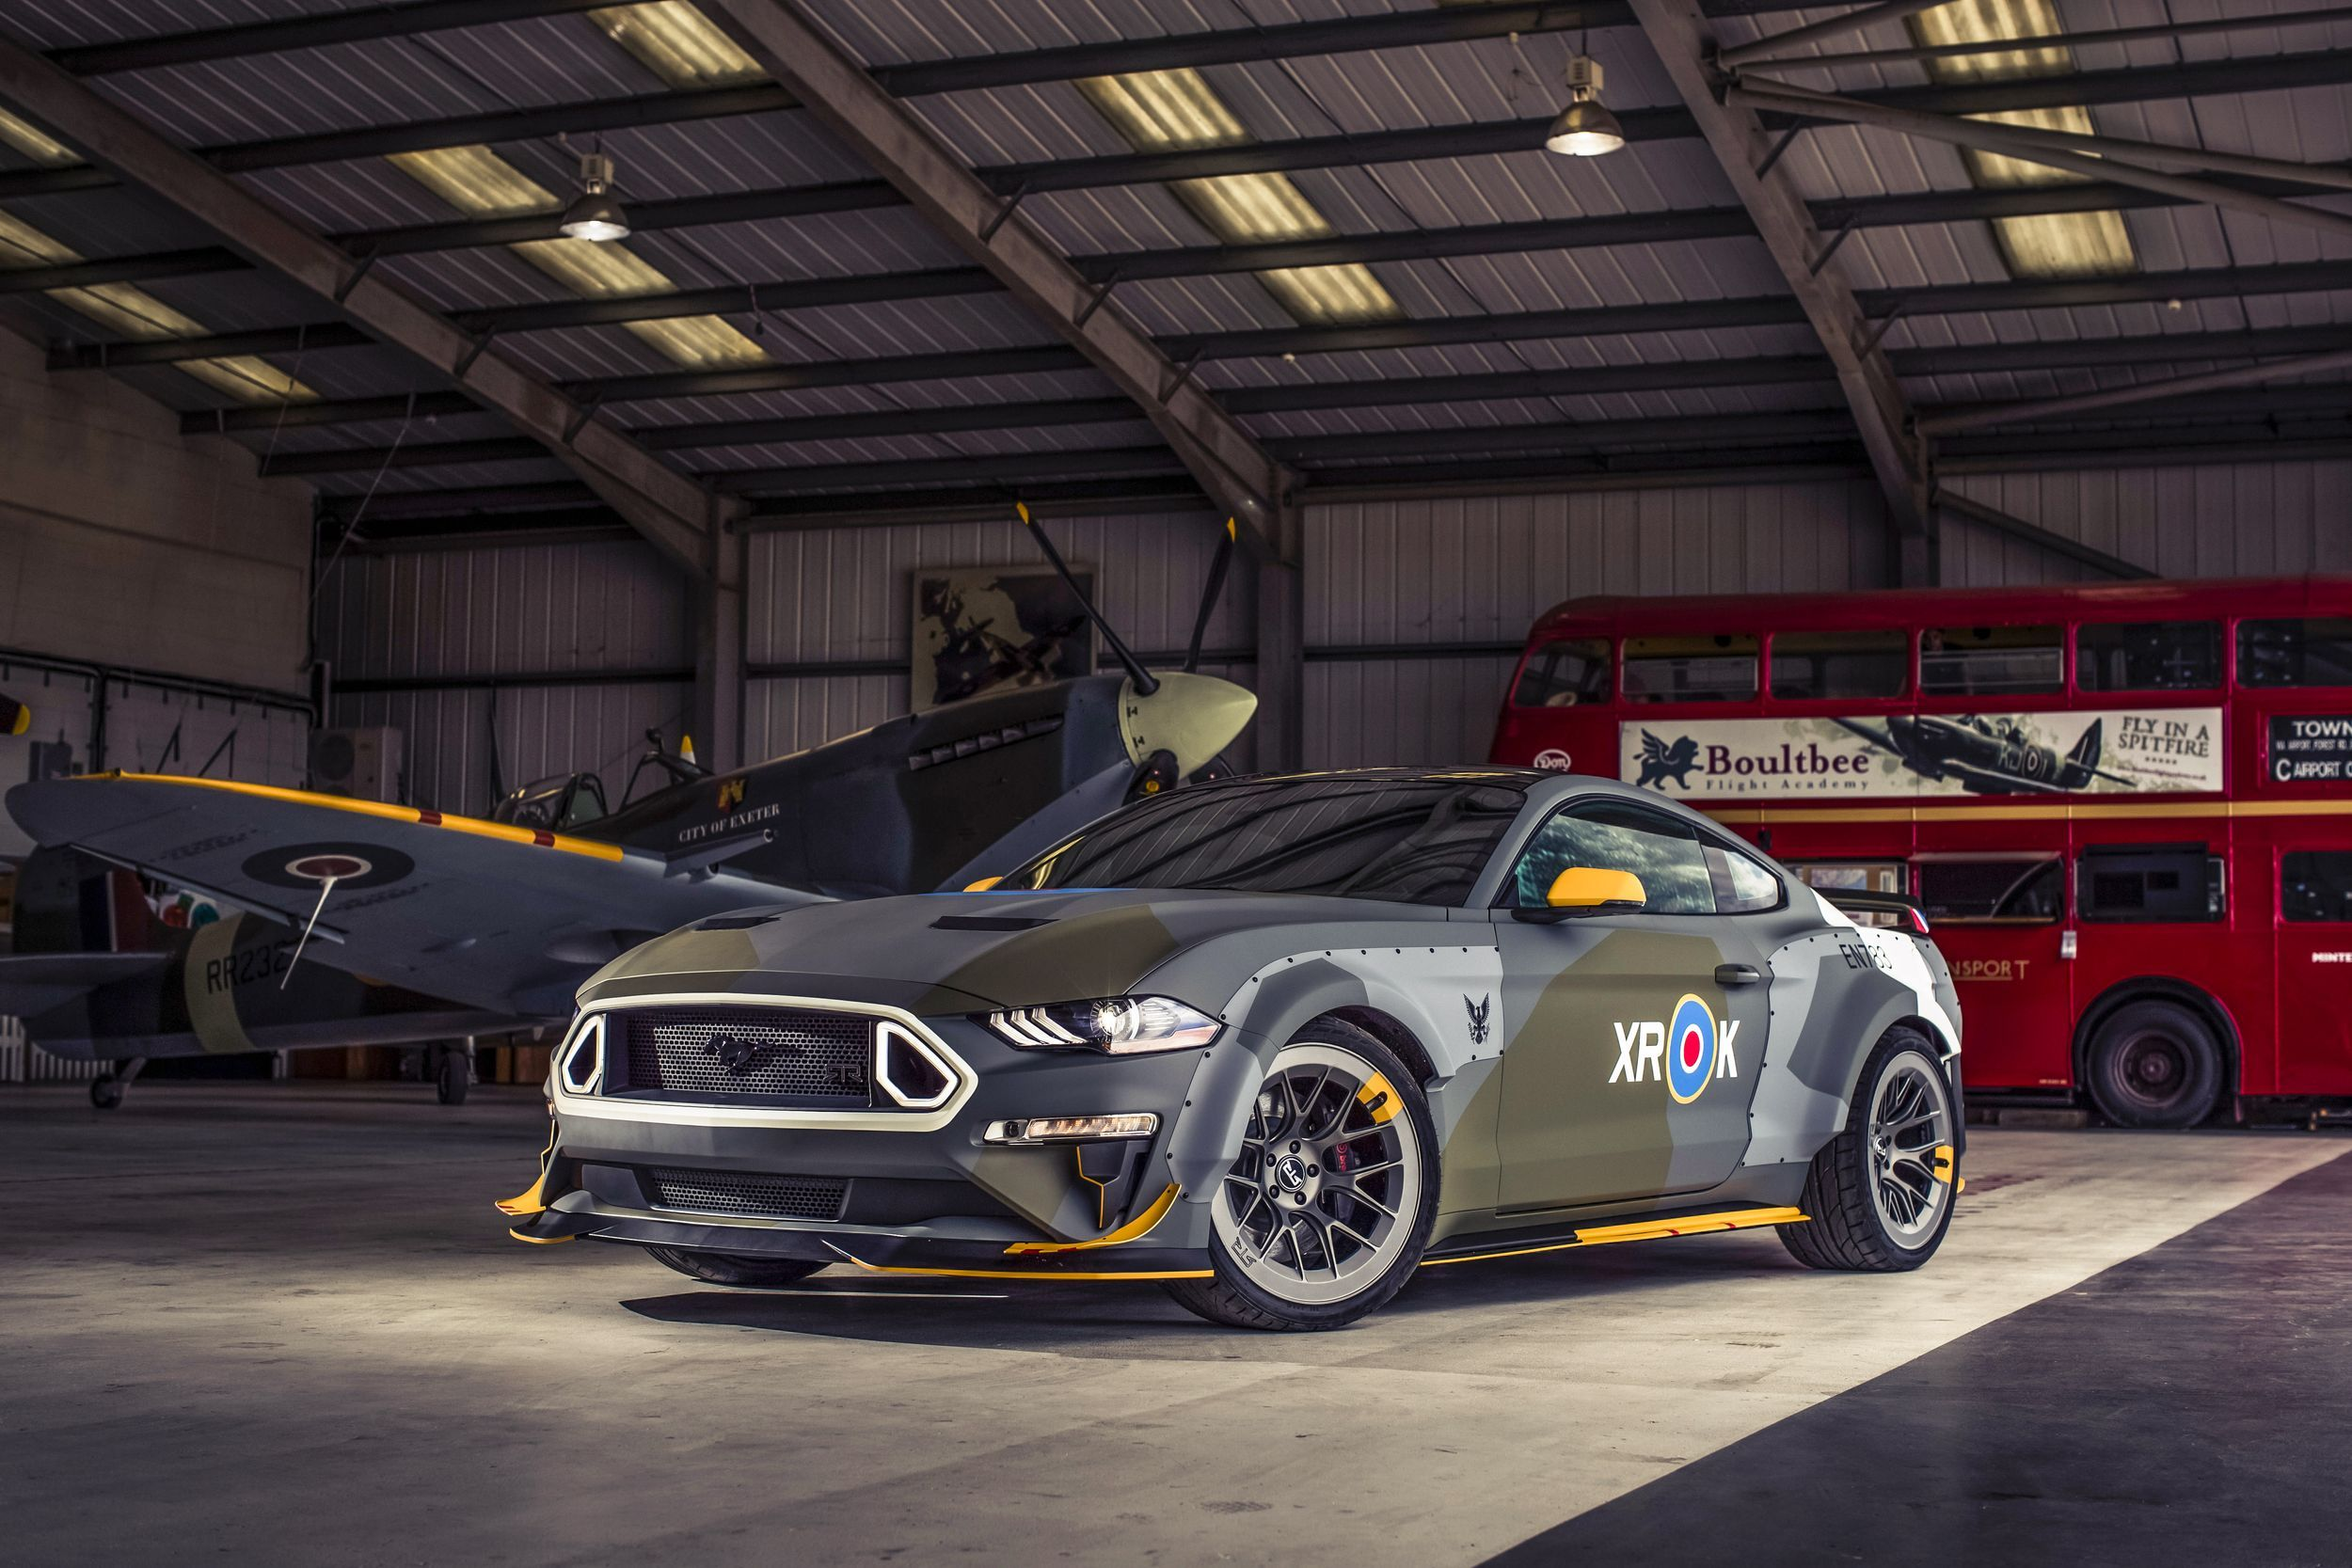 One Off Eagle Squadron Mustang To Be Auctioned At Eaa Oshk